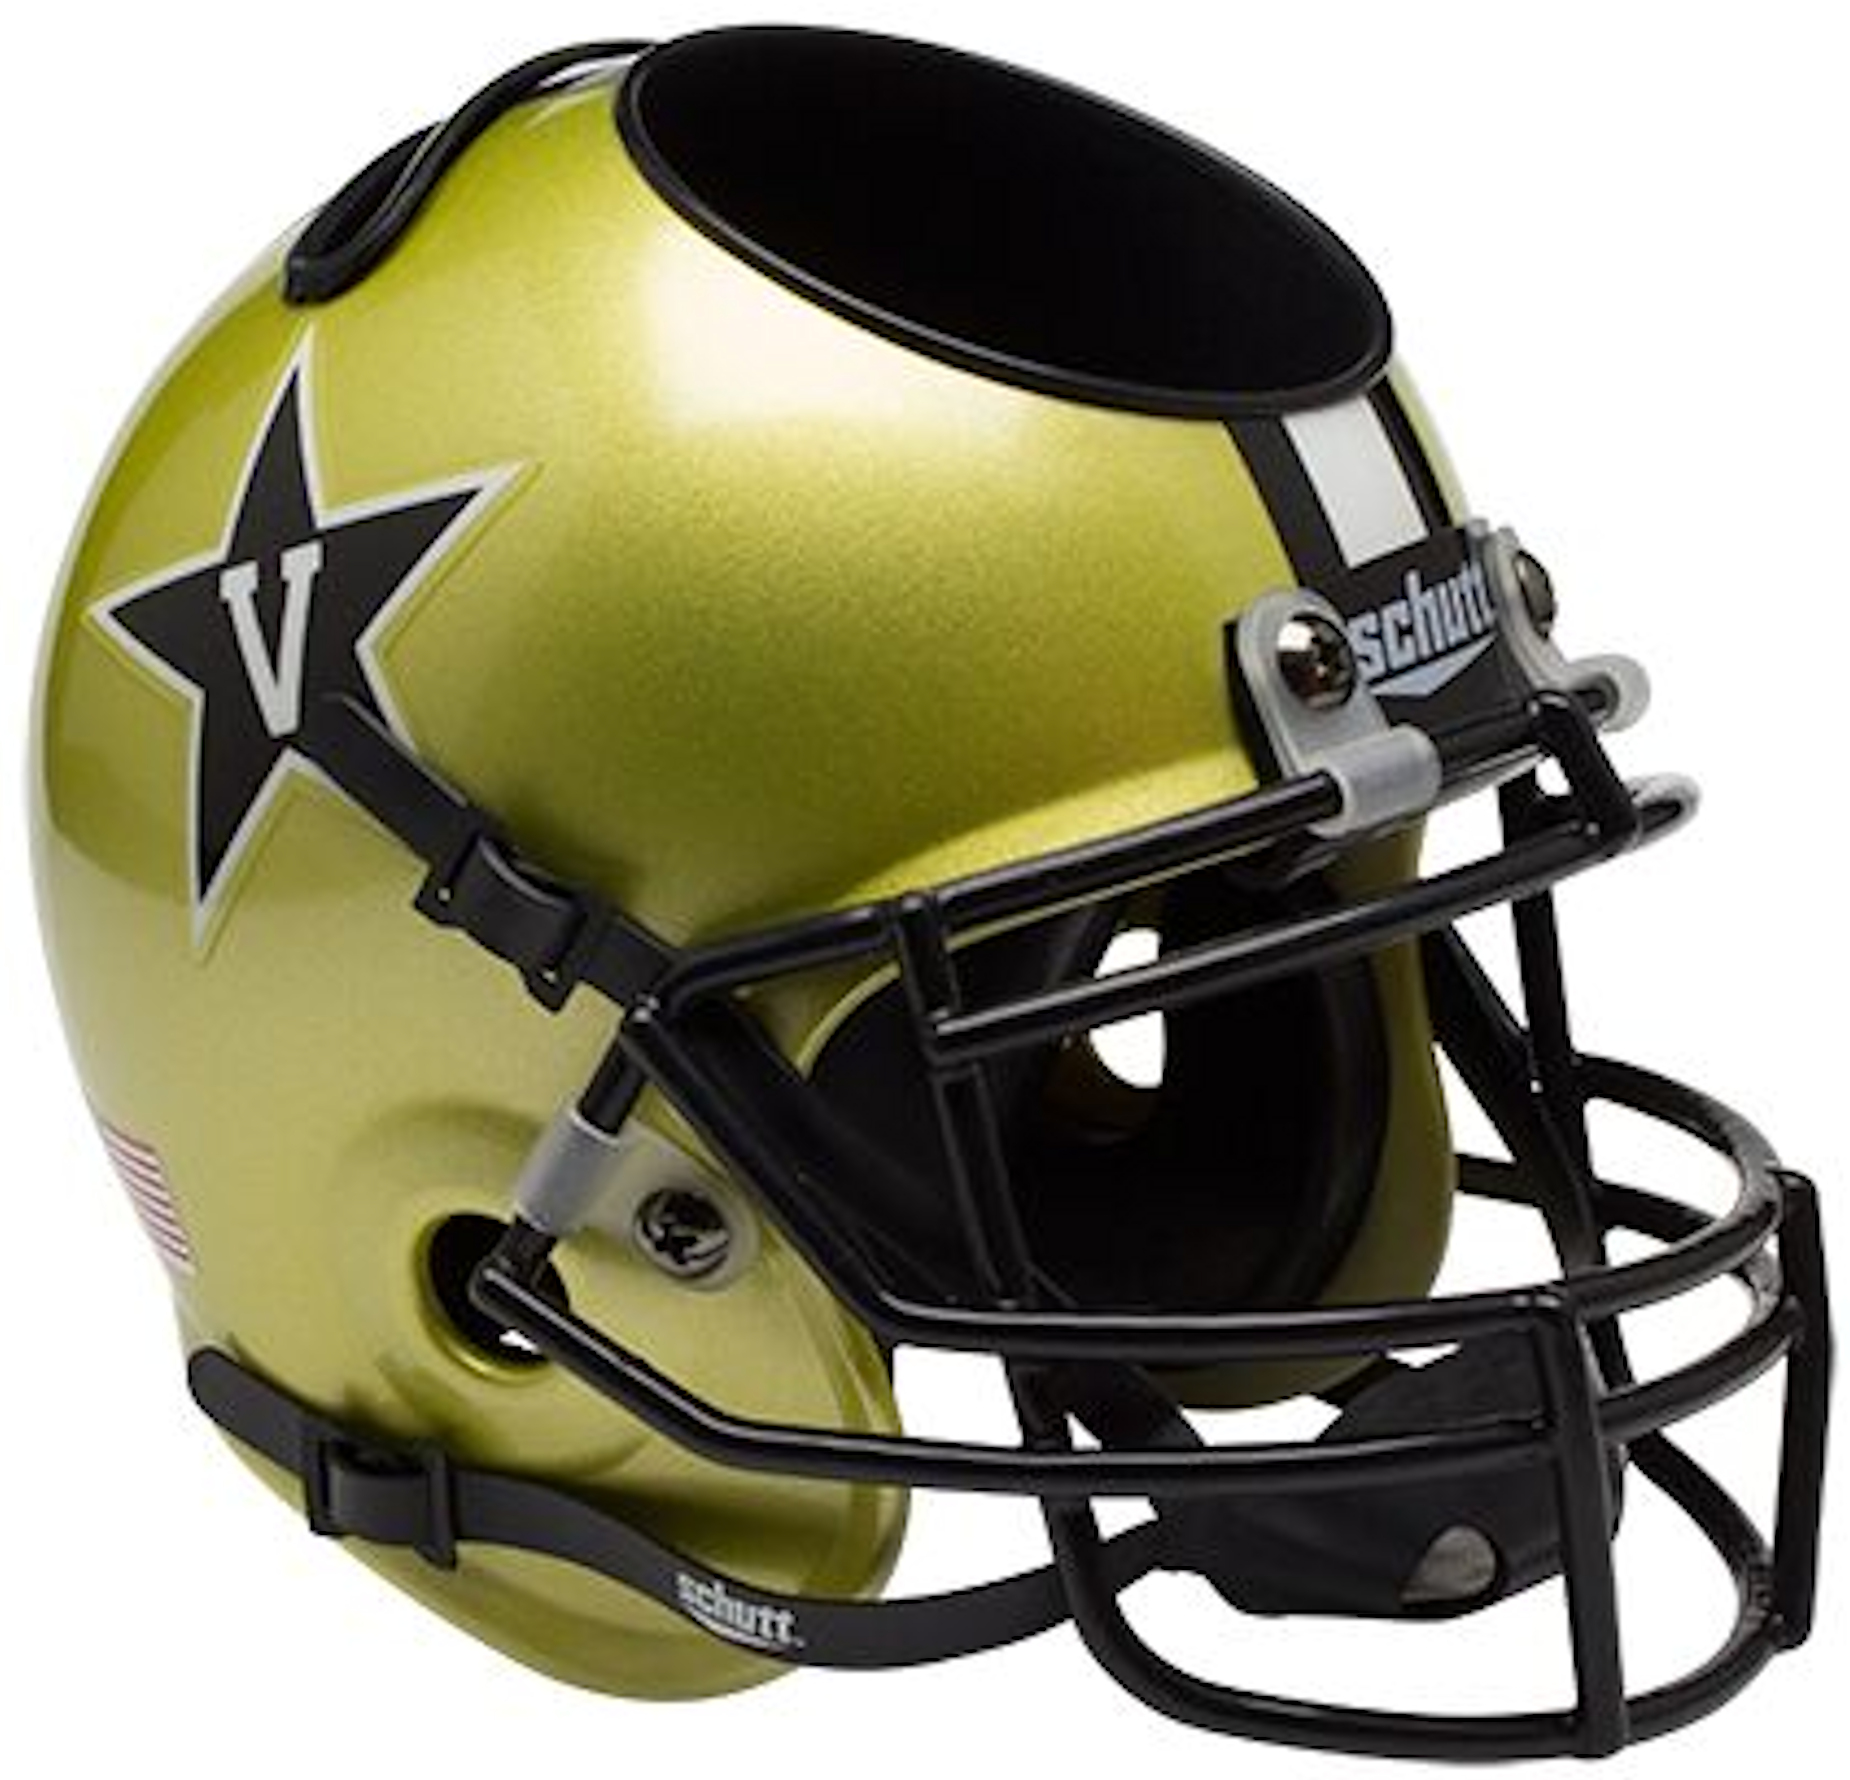 Vanderbilt Commodores Miniature Football Helmet Desk Caddy